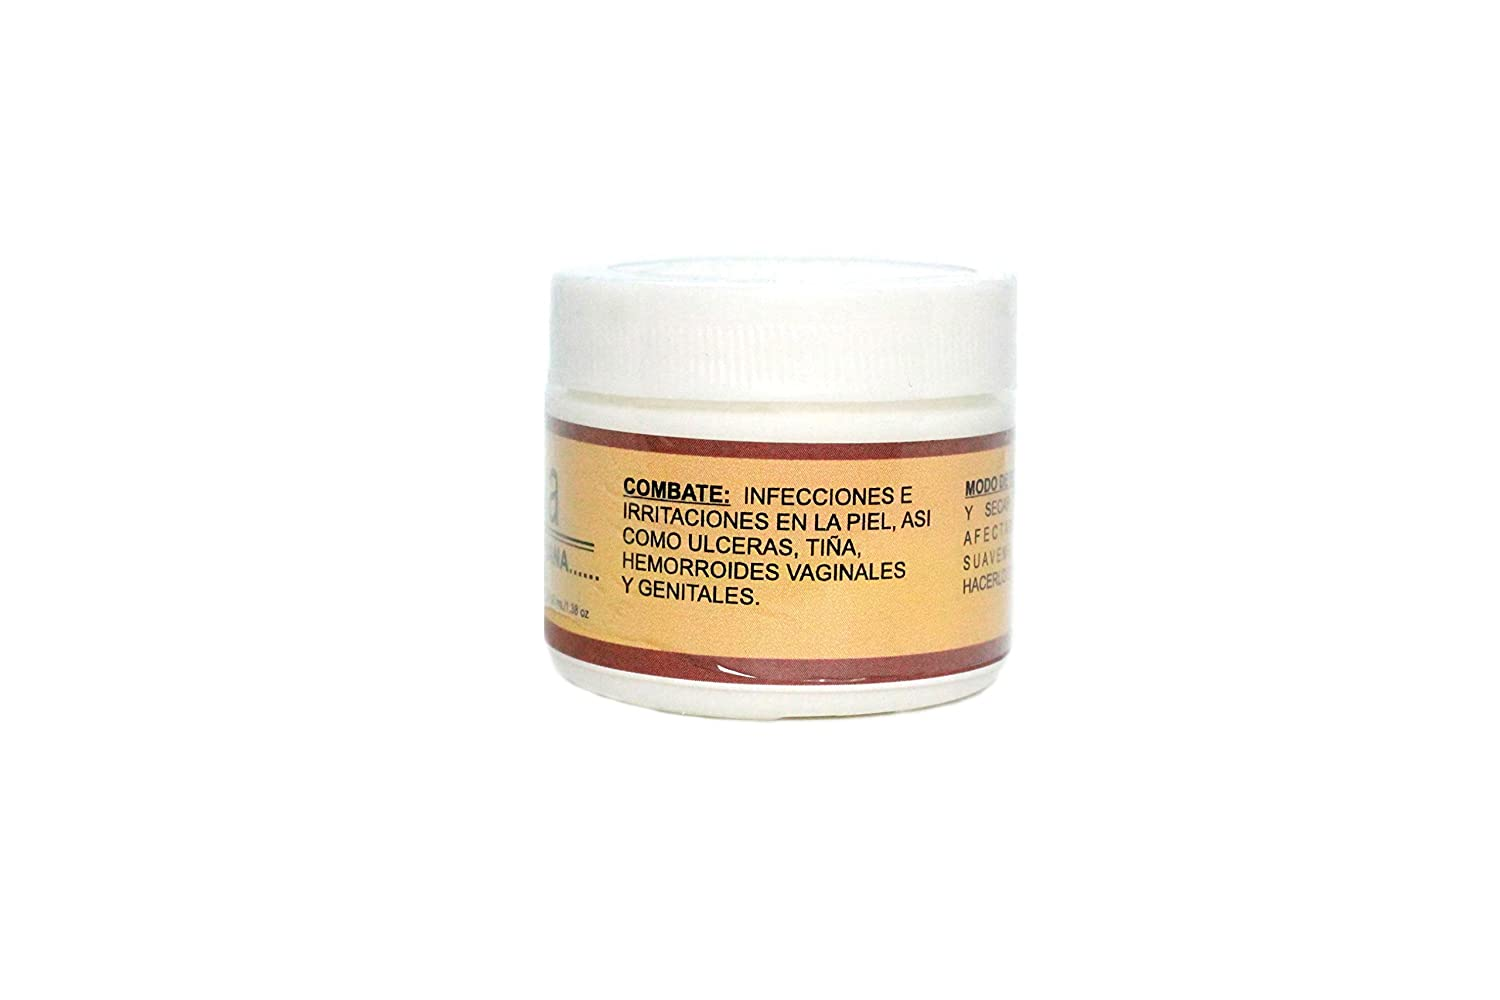 Amazon.com: Crema Piel Sana Skin Infection, Irritation /.Infecciones De La Piel,irritacion De La Piel 40gr: Beauty